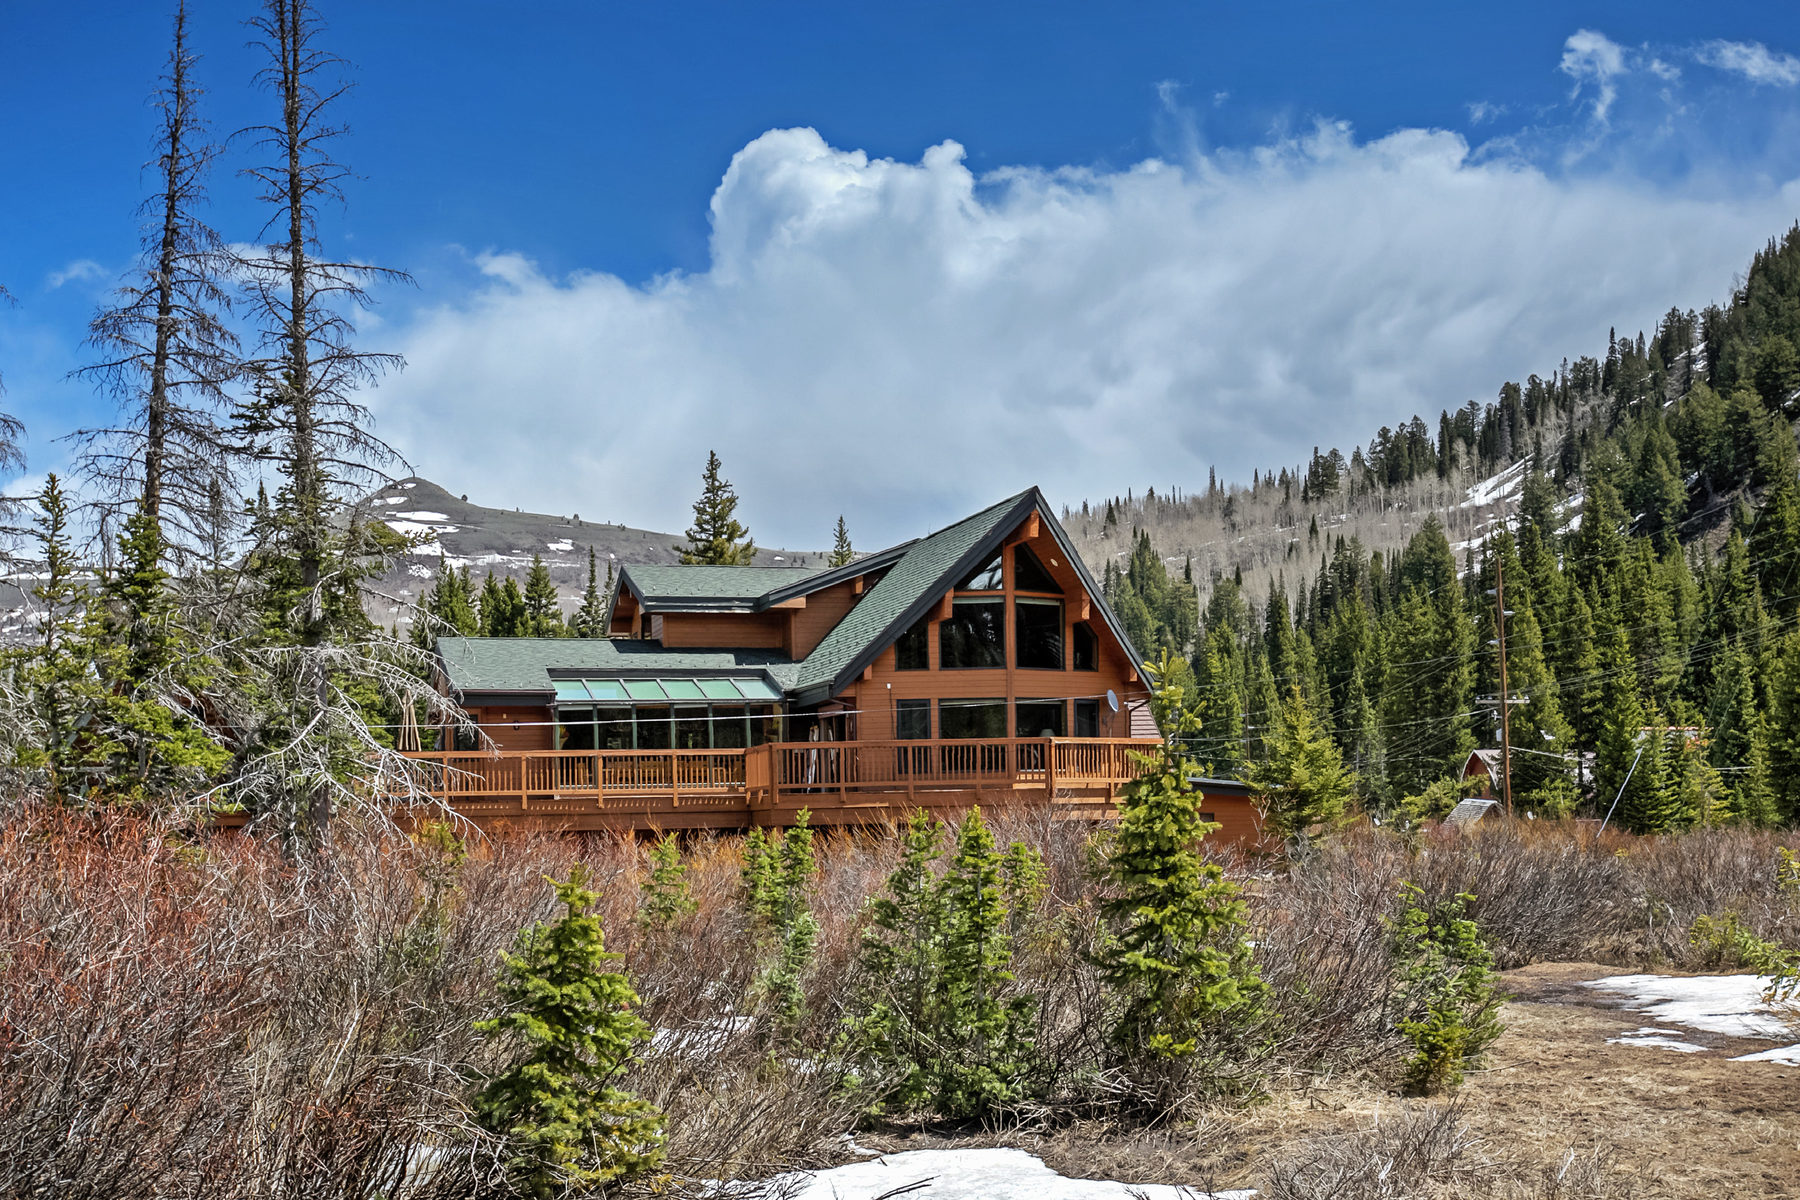 Villa per Vendita alle ore Spectacular Year Round Luxury Ski Home 7958 S Big Cottonwood Canyon Rd Brighton, Utah, 84121 Stati Uniti